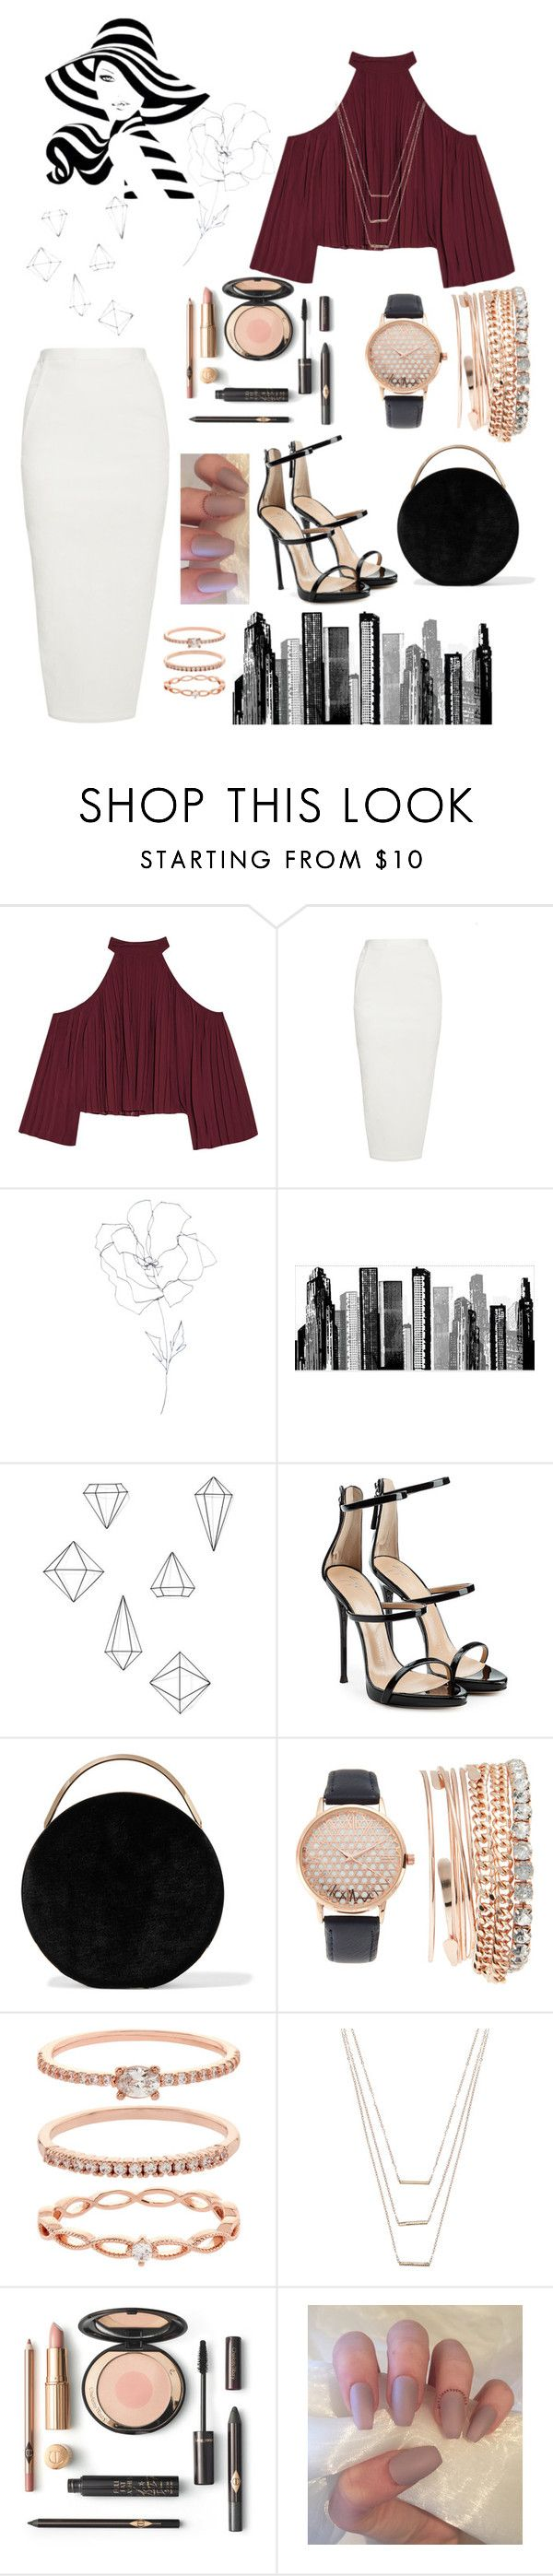 """Real woman"" by andrea-oh14 ❤ liked on Polyvore featuring W118 by Walter Baker, Rick Owens, Blume, RoomMates Decor, Umbra, Giuseppe Zanotti, Eddie Borgo, Jessica Carlyle, Accessorize and ERTH"